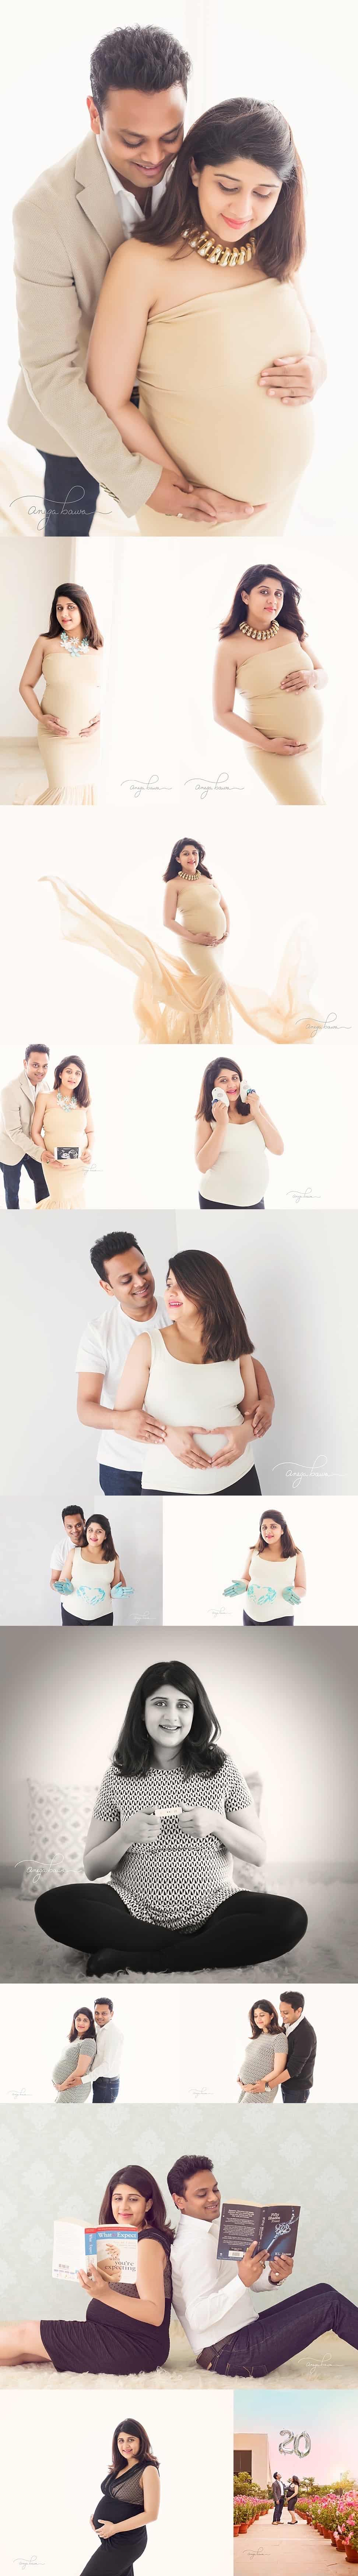 pregnancy_photoshoot_gurgaon_noida anega bawa